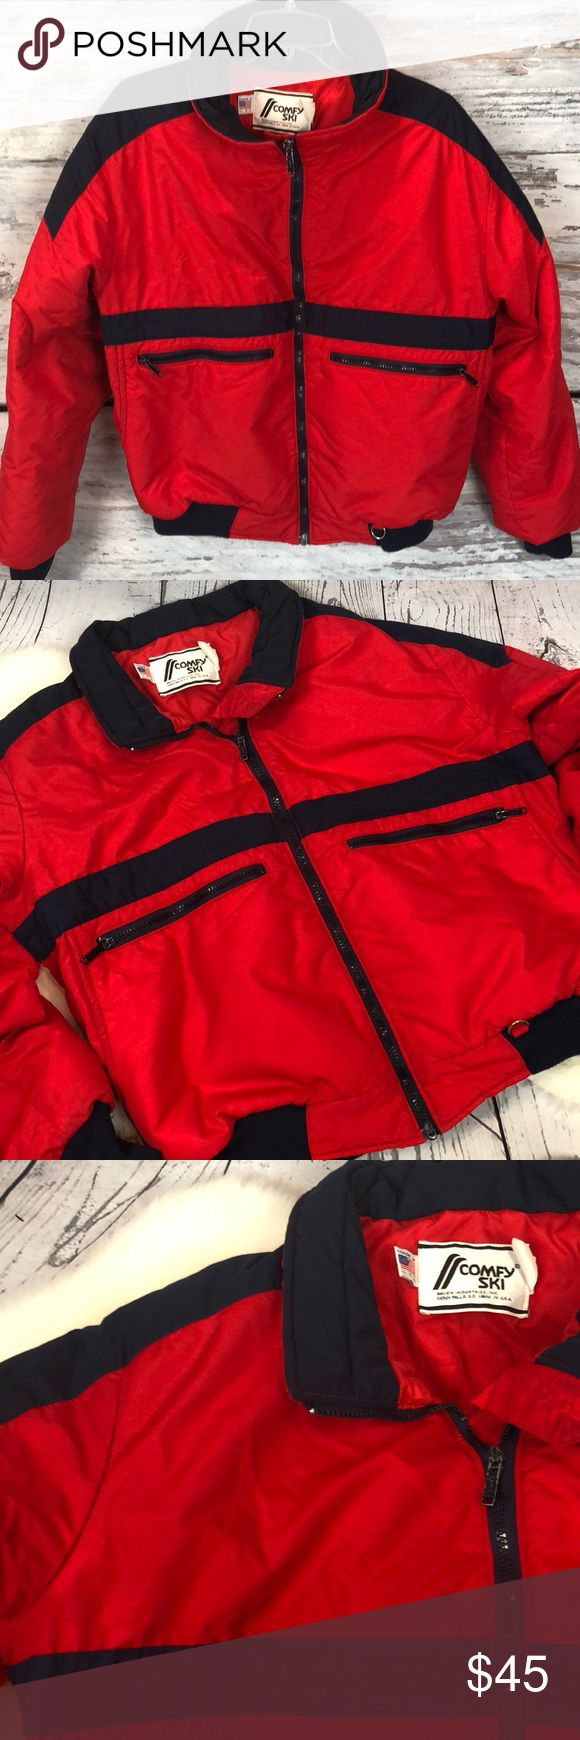 "•Vintage• Bomber Comfy Ski Sown Jacket Coat USA L Sweeeeet RETRO Vintage Comfy Ski Red Bomber Down Coat. Red & Navy. Very WARM coat ... side & front zippered pockets. Elastic at waist & cuffs. Made in the USA. True 1980's vintage gem! In very good condition...only minor discoloring at neck area inside zipper. Appears black but it is a true navy & vibrant red. No size listed so please review measurements!!  Fits me as a women's XL.  Approximate measurements: Armpit to armpit: 25"" Armpit to…"